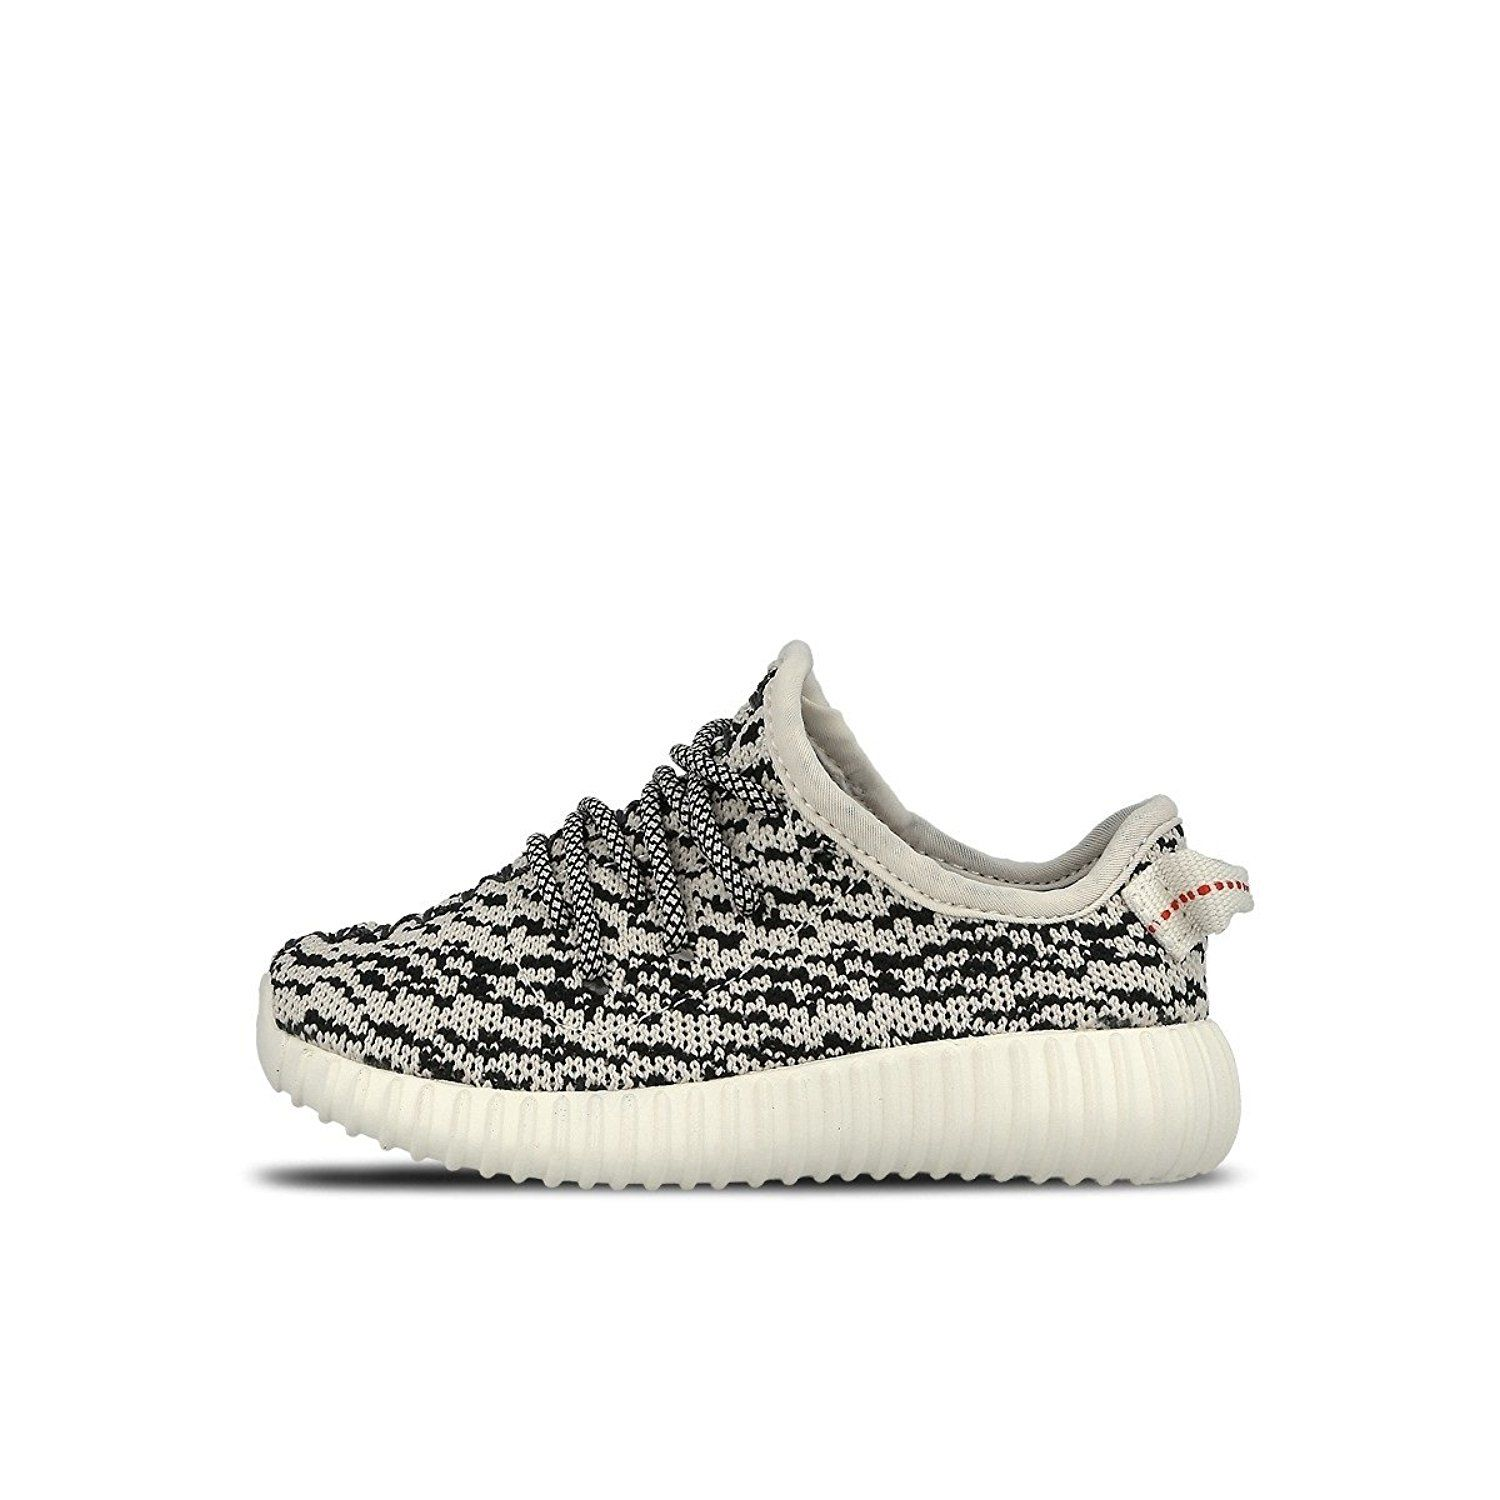 42732812e2d54f ... order adidas yeezy boost 350 infant baby sneakers turtle dove bb5354 us  size 9k amazon price ...